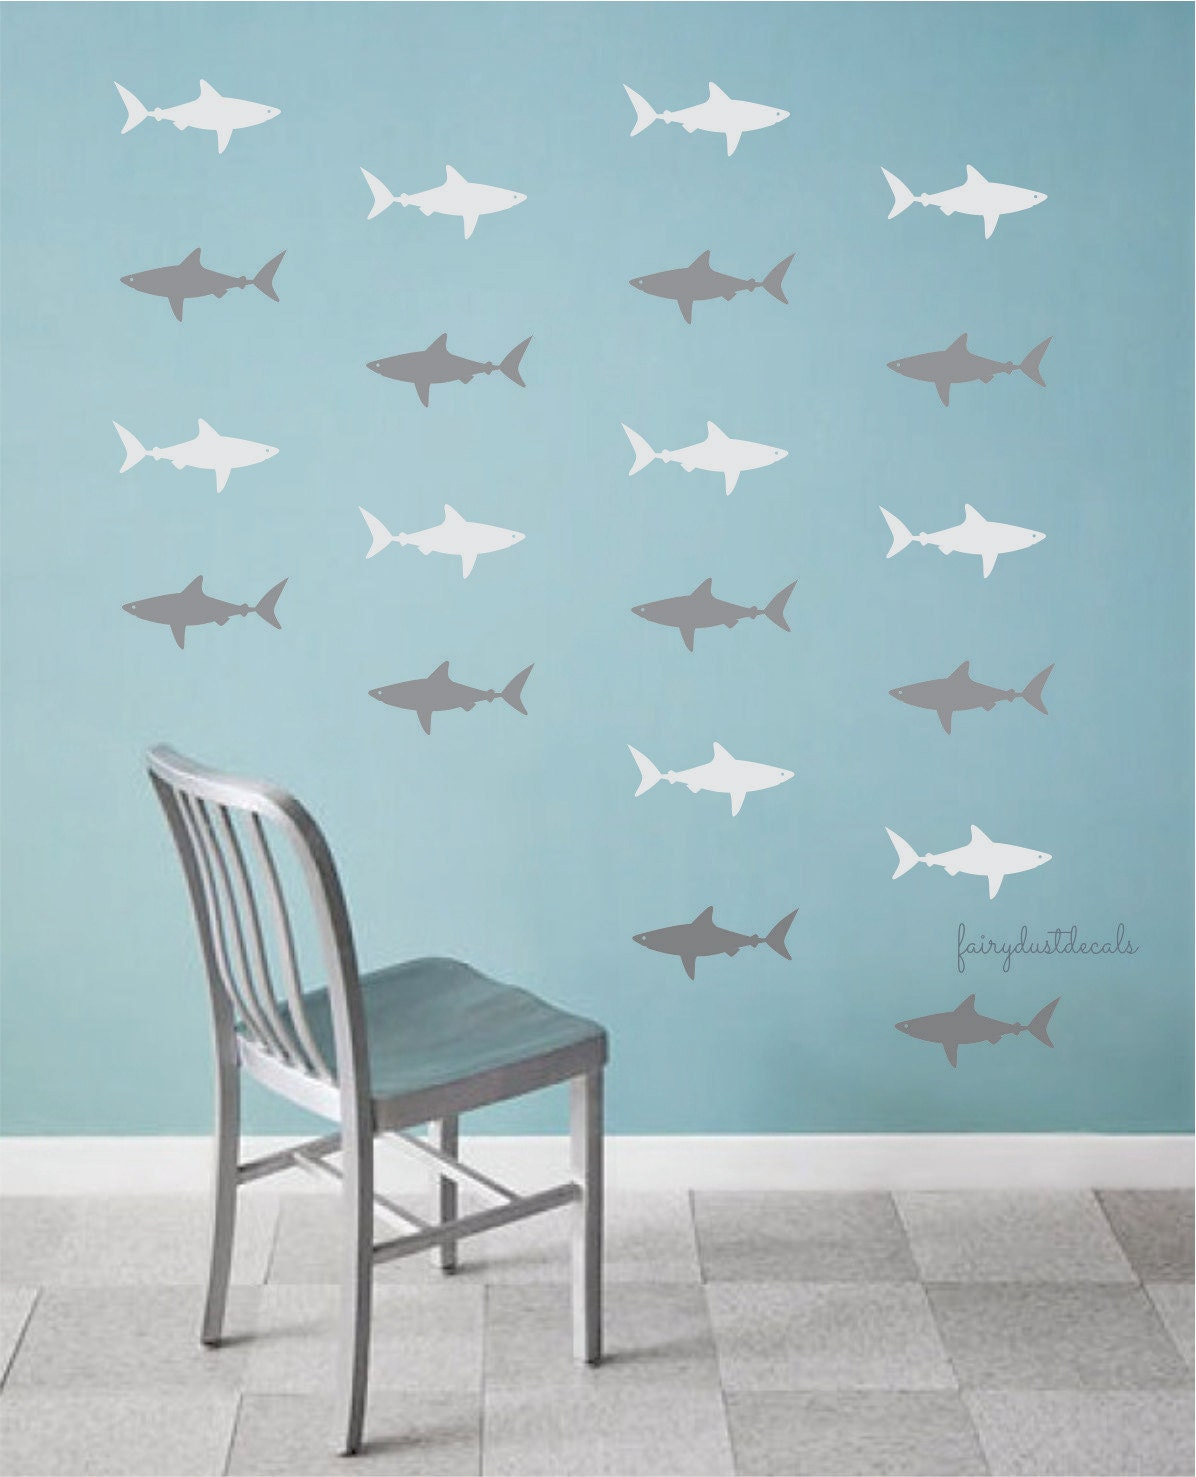 Captivating Details. Shark Wall Decals Part 12